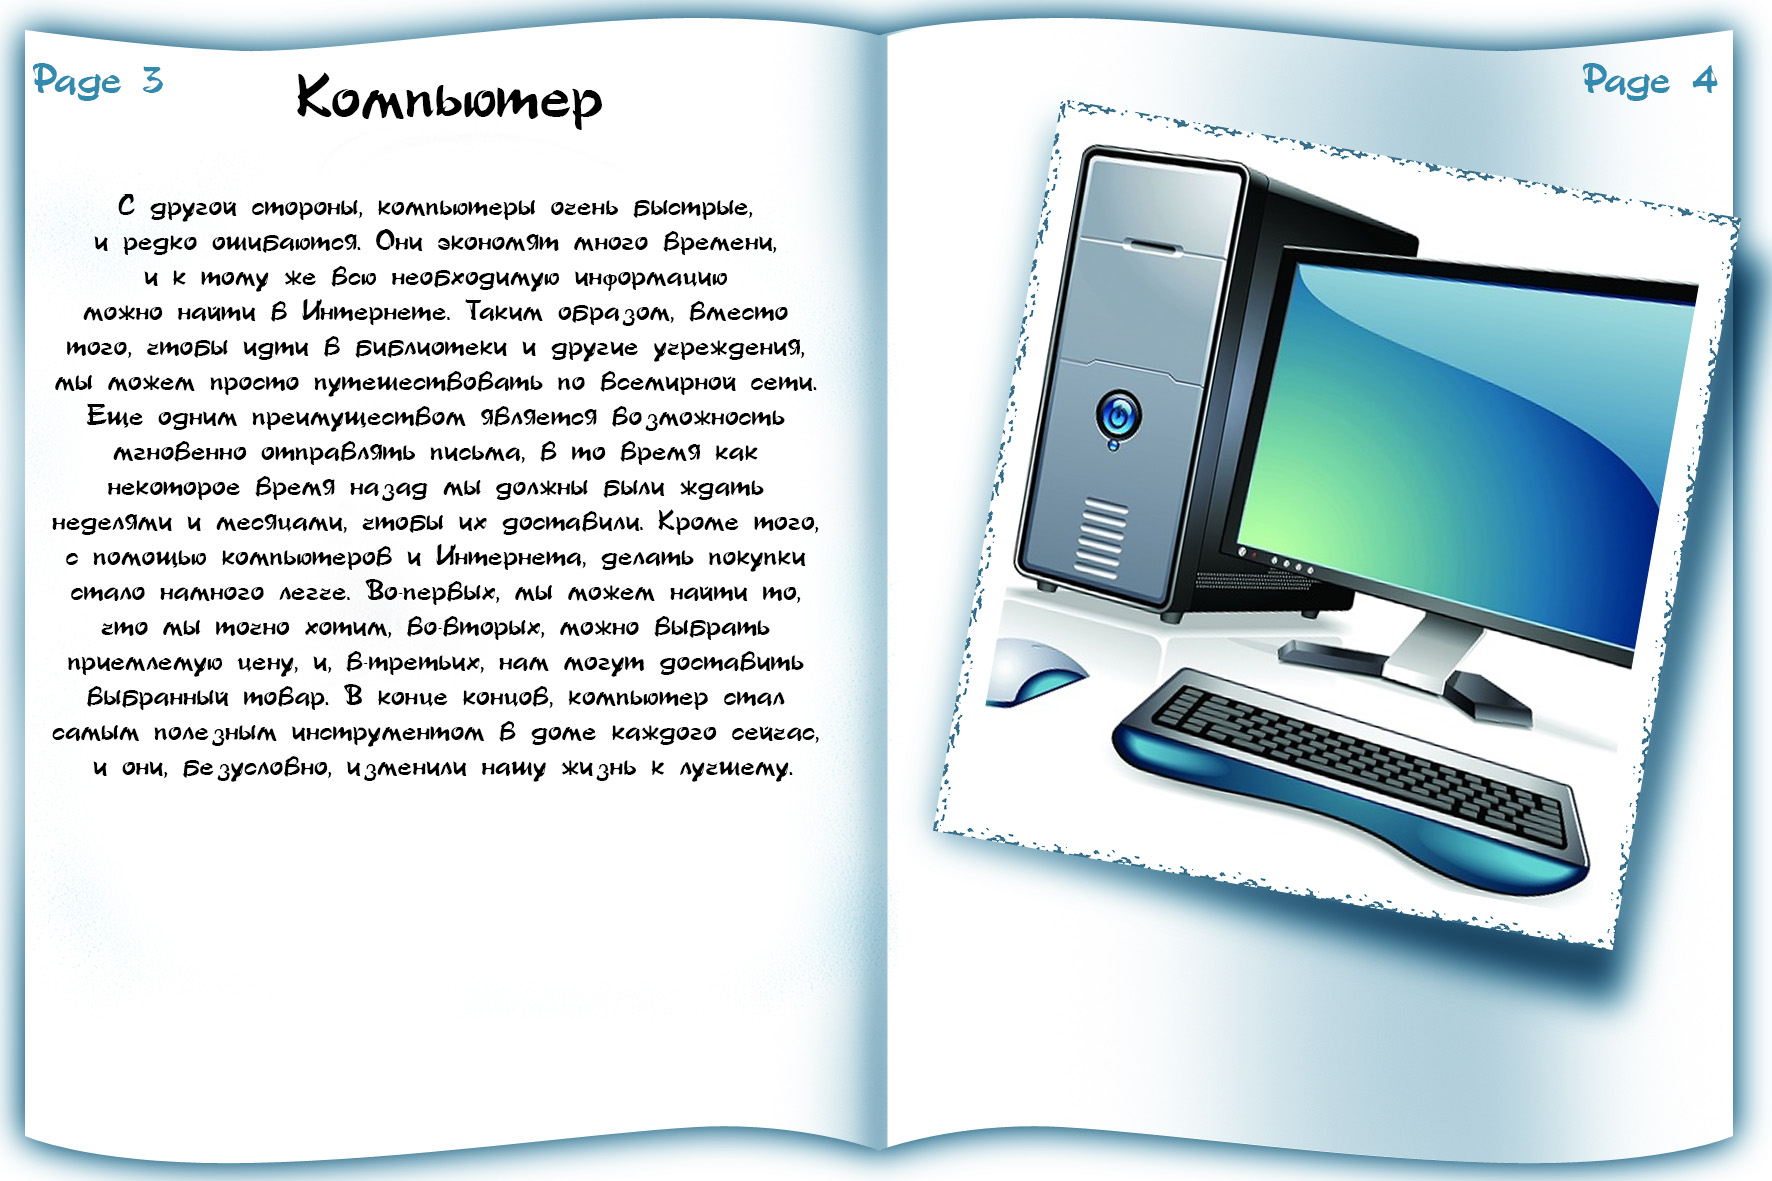 electronic gadgets 2 essay Using electronics gadgets, today, is so much a part of our daily life besides, its useful purposes, every gadget, has its own positive, and also apart from being an educational and learning medium, electronic gadgets in some people's opinion are a good source to relieve stress and provide fun and.